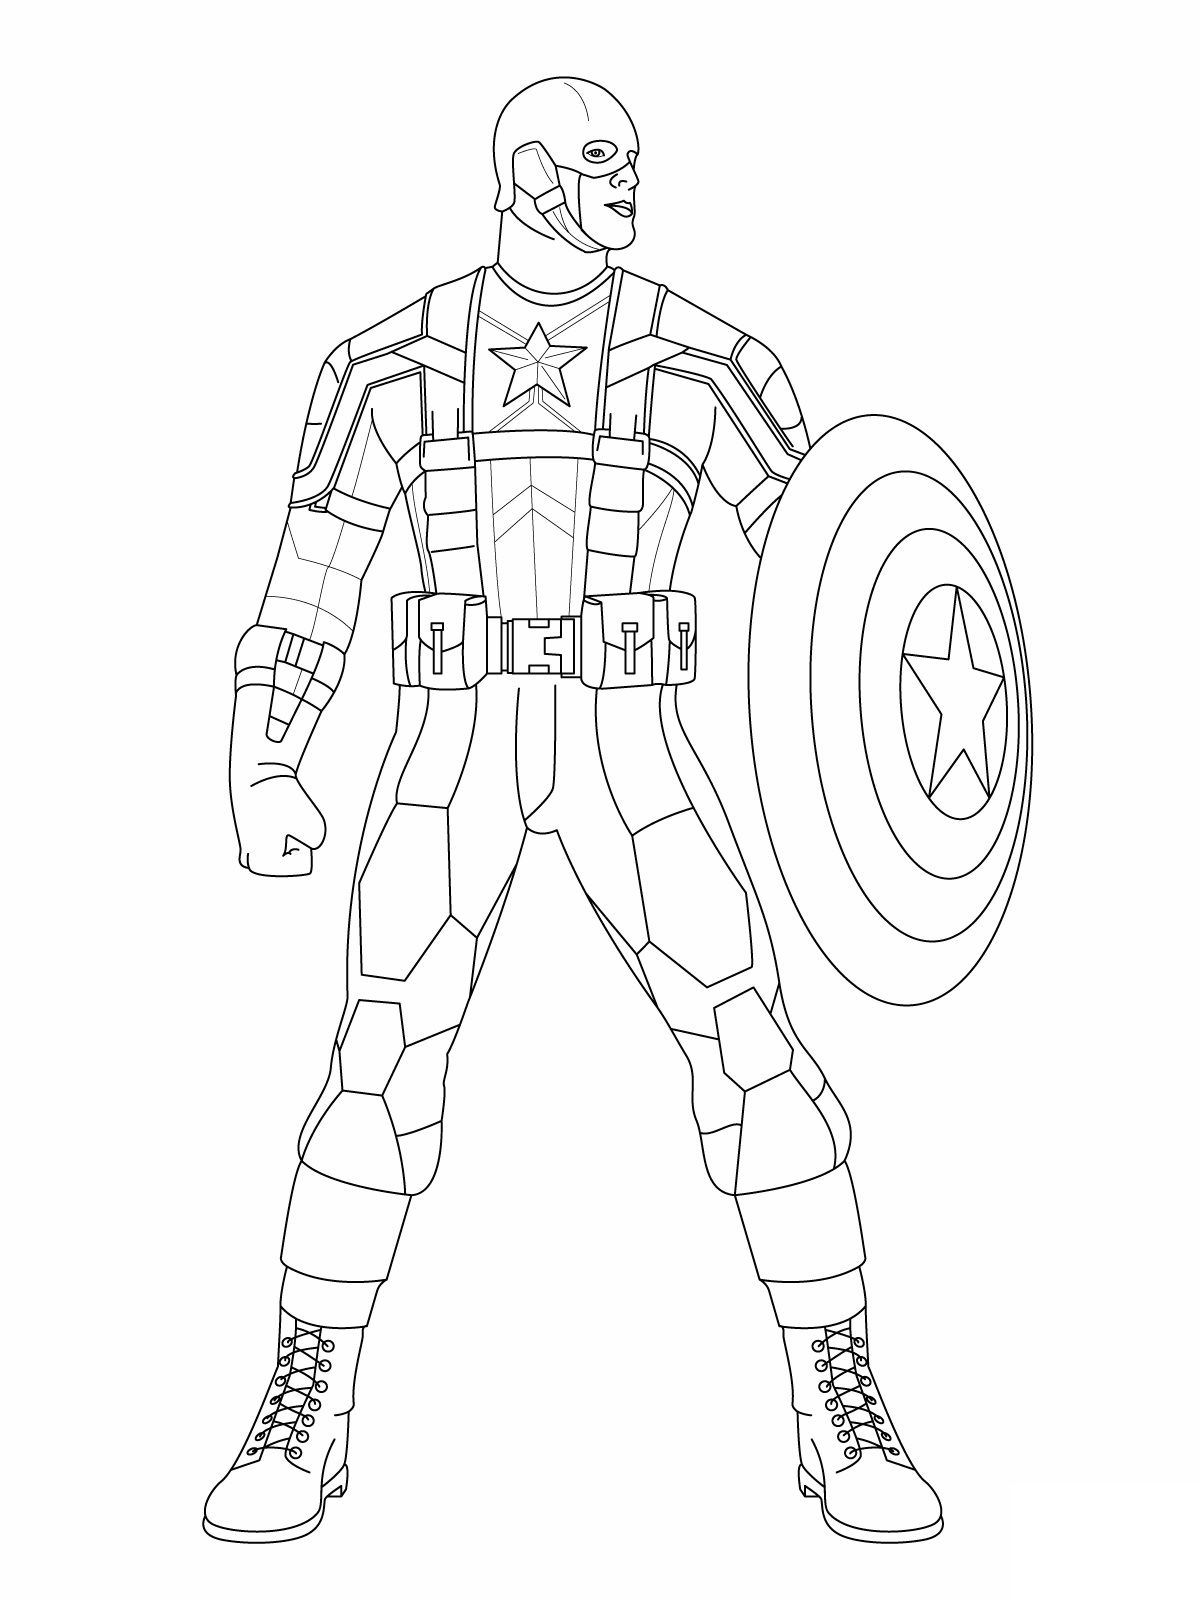 Captain-America-Coloring-Pages-Photos.jpg (1200×1600